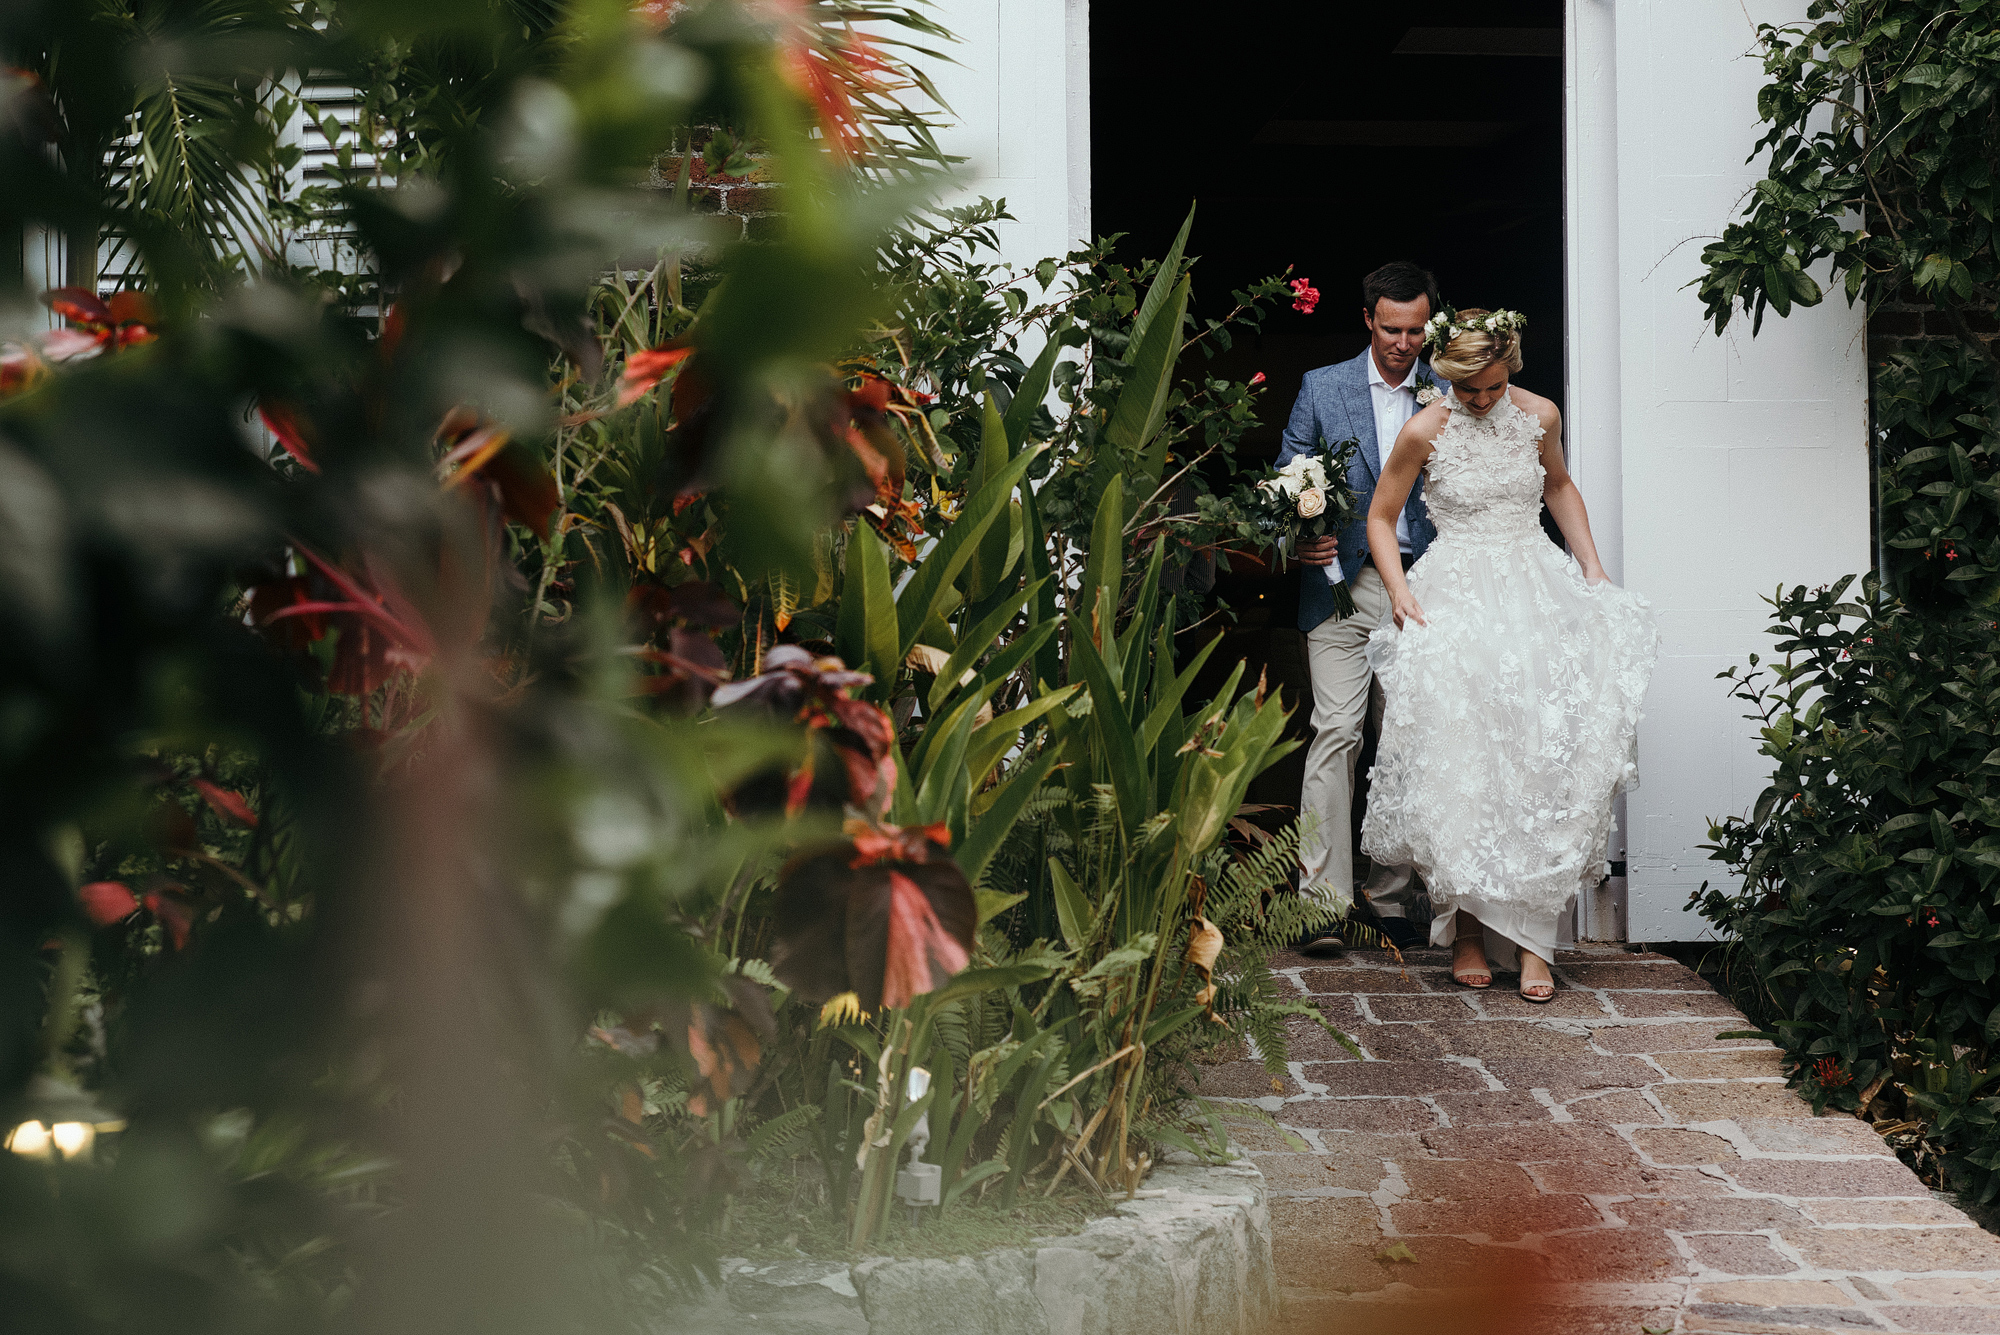 Admirals Inn, Admirals Inn Wedding Photography, Antigua